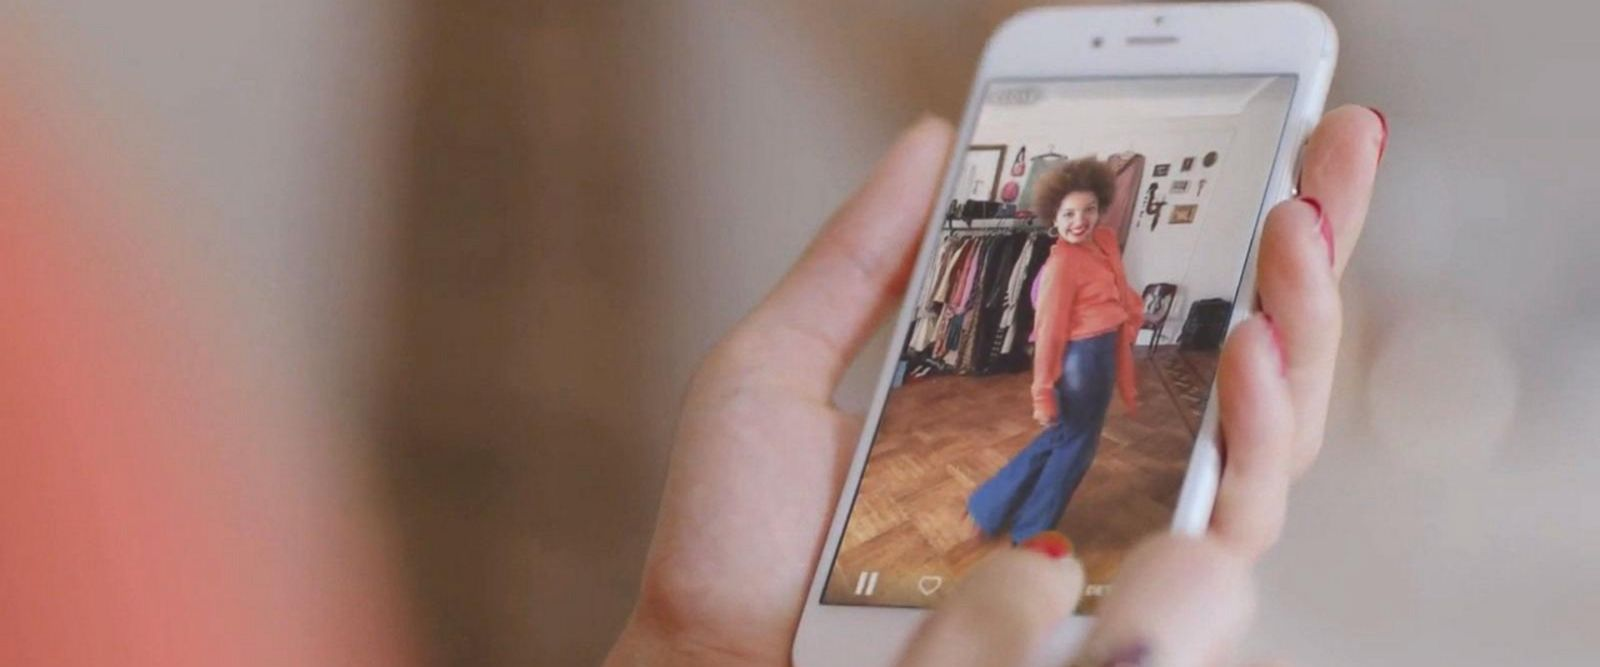 VIDEO: Amazon's Alexa gets makeover as virtual fashion assistant